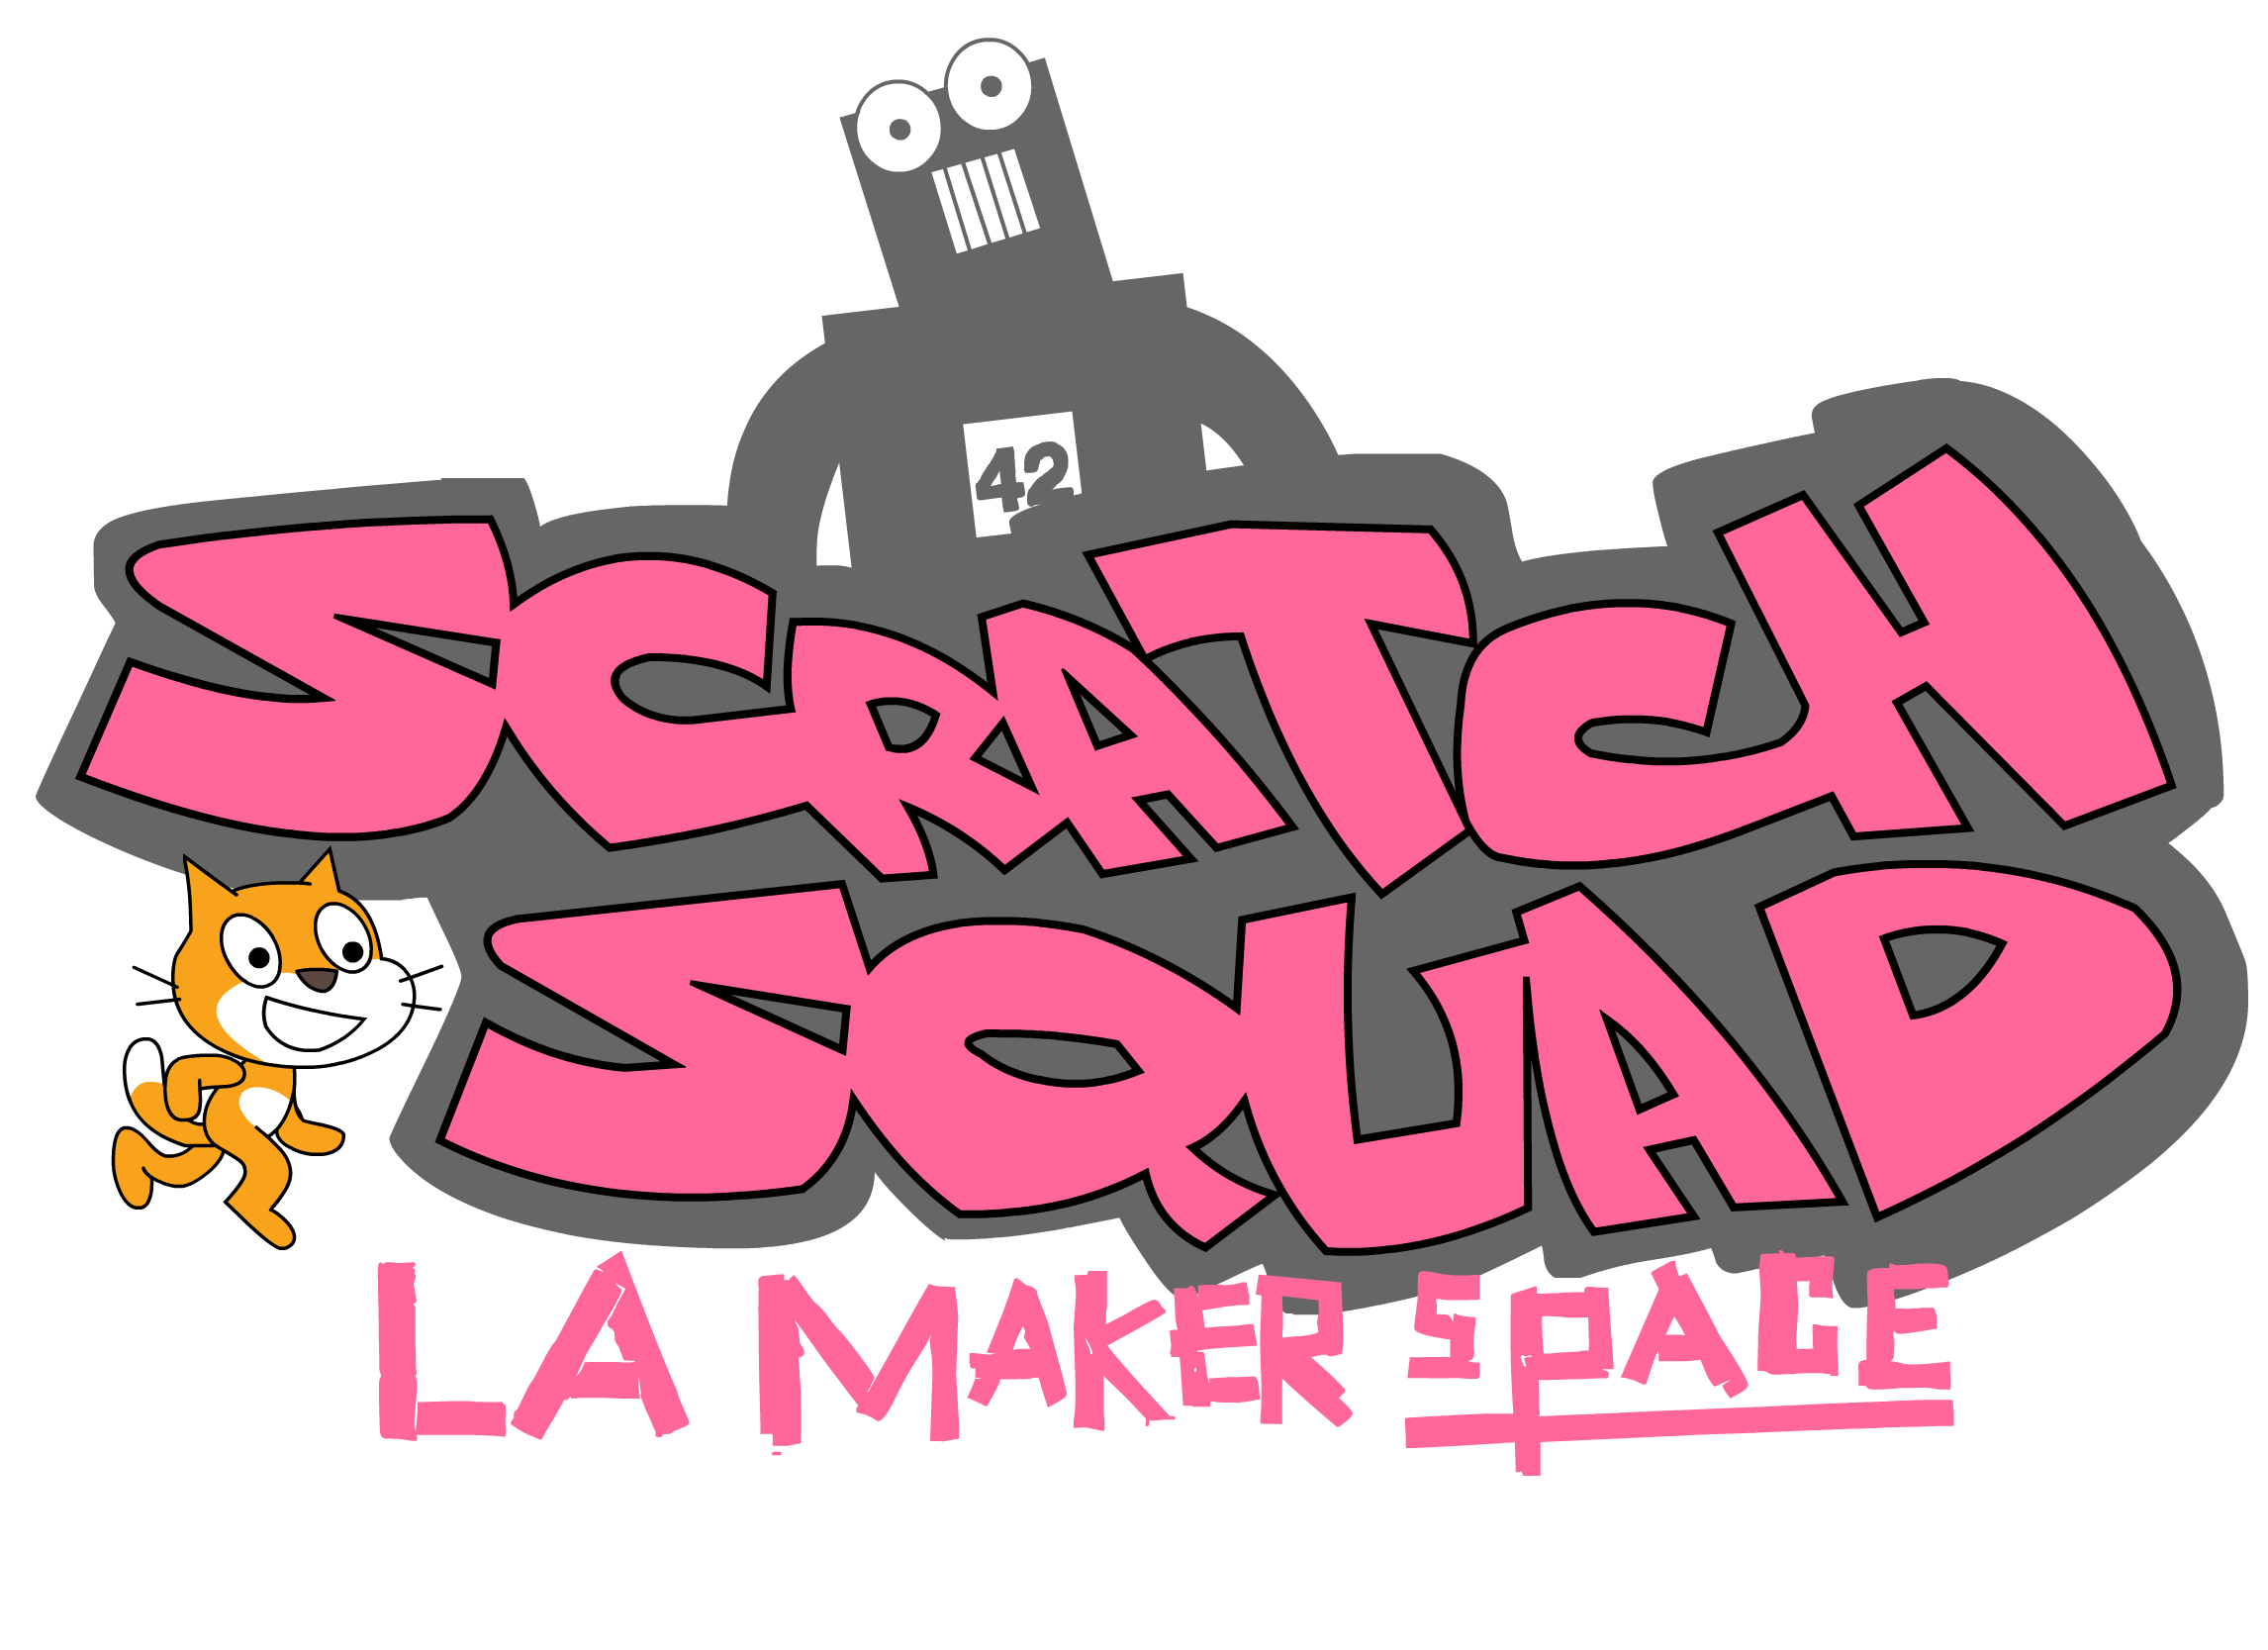 Scratch_Squad_Final_Design_JJanovsky.png